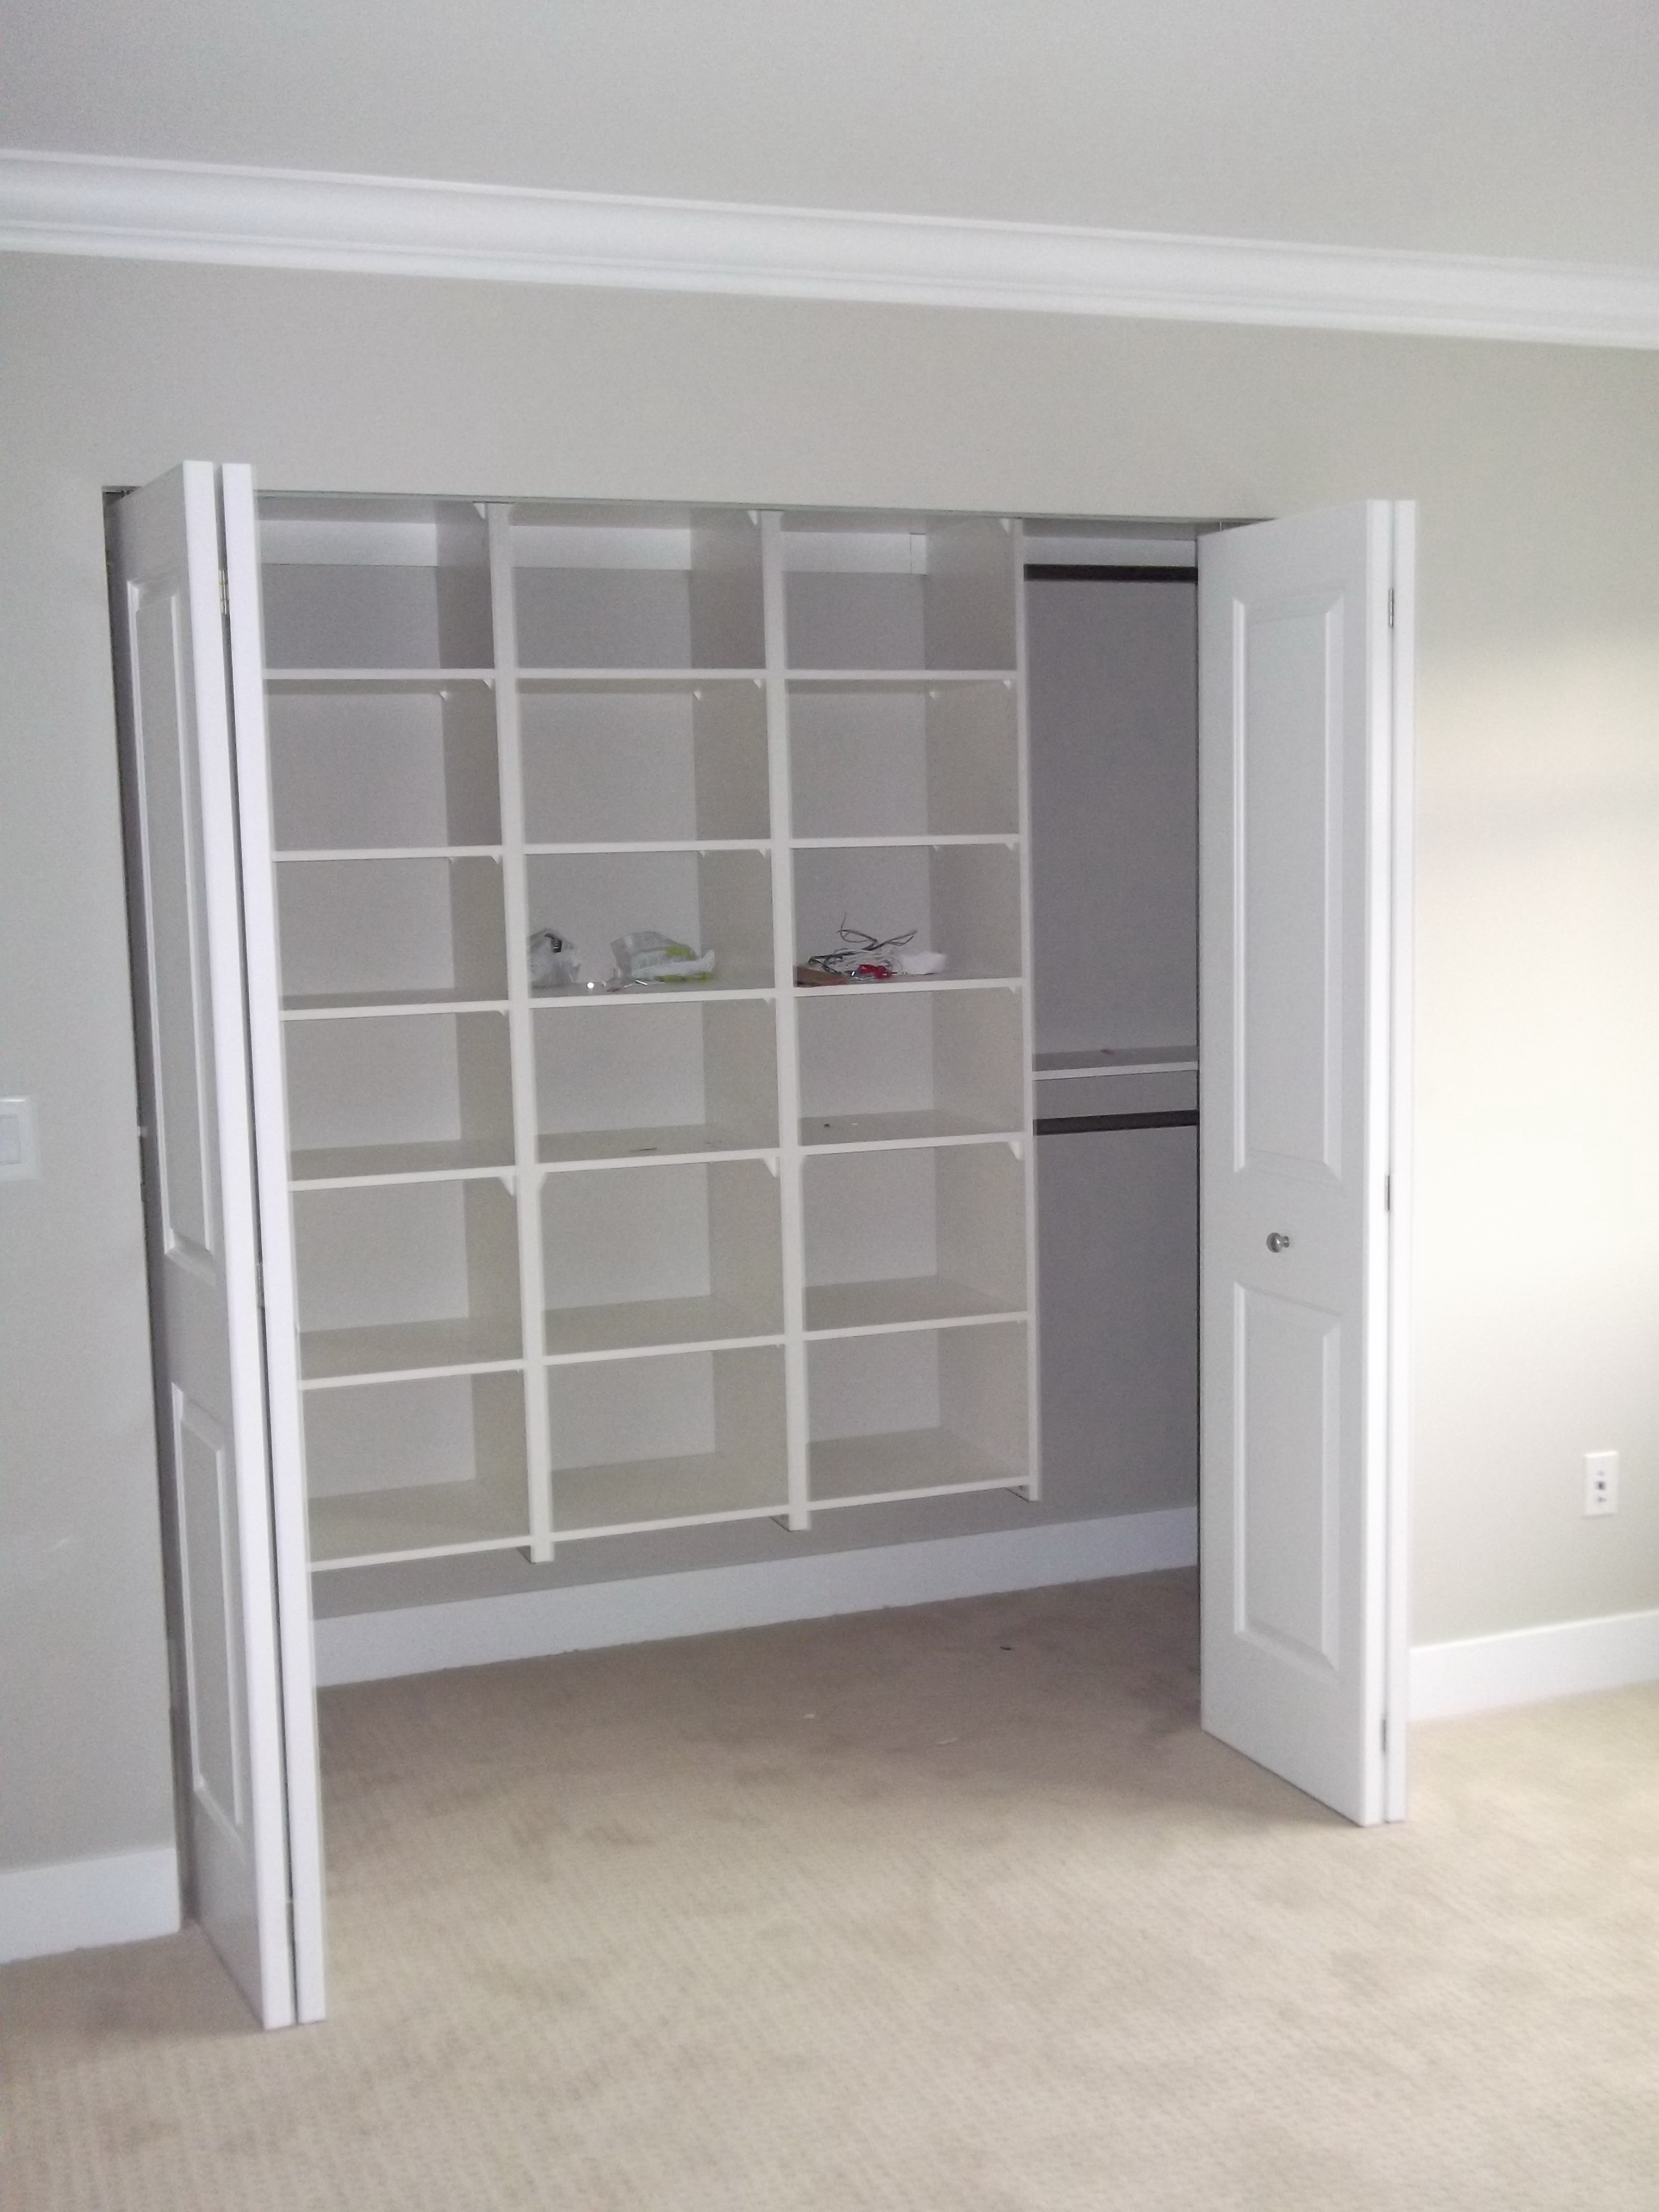 Appletree cabinets closet organizers Pictures of closet organizers